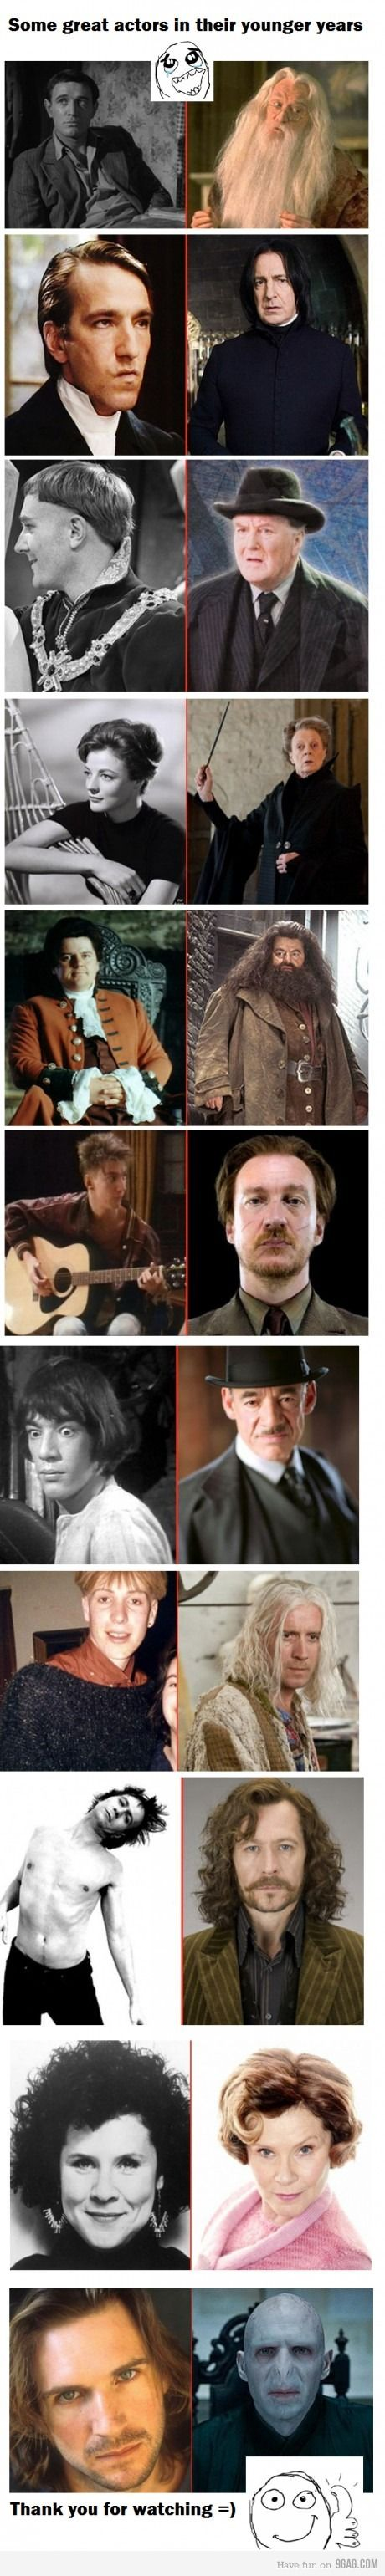 337 best images about harry and ginny on pinterest harry birthday - Harry Potter S Adult Actors In Their Younger Years Original Dumbledore Was Kinda Hot Back In